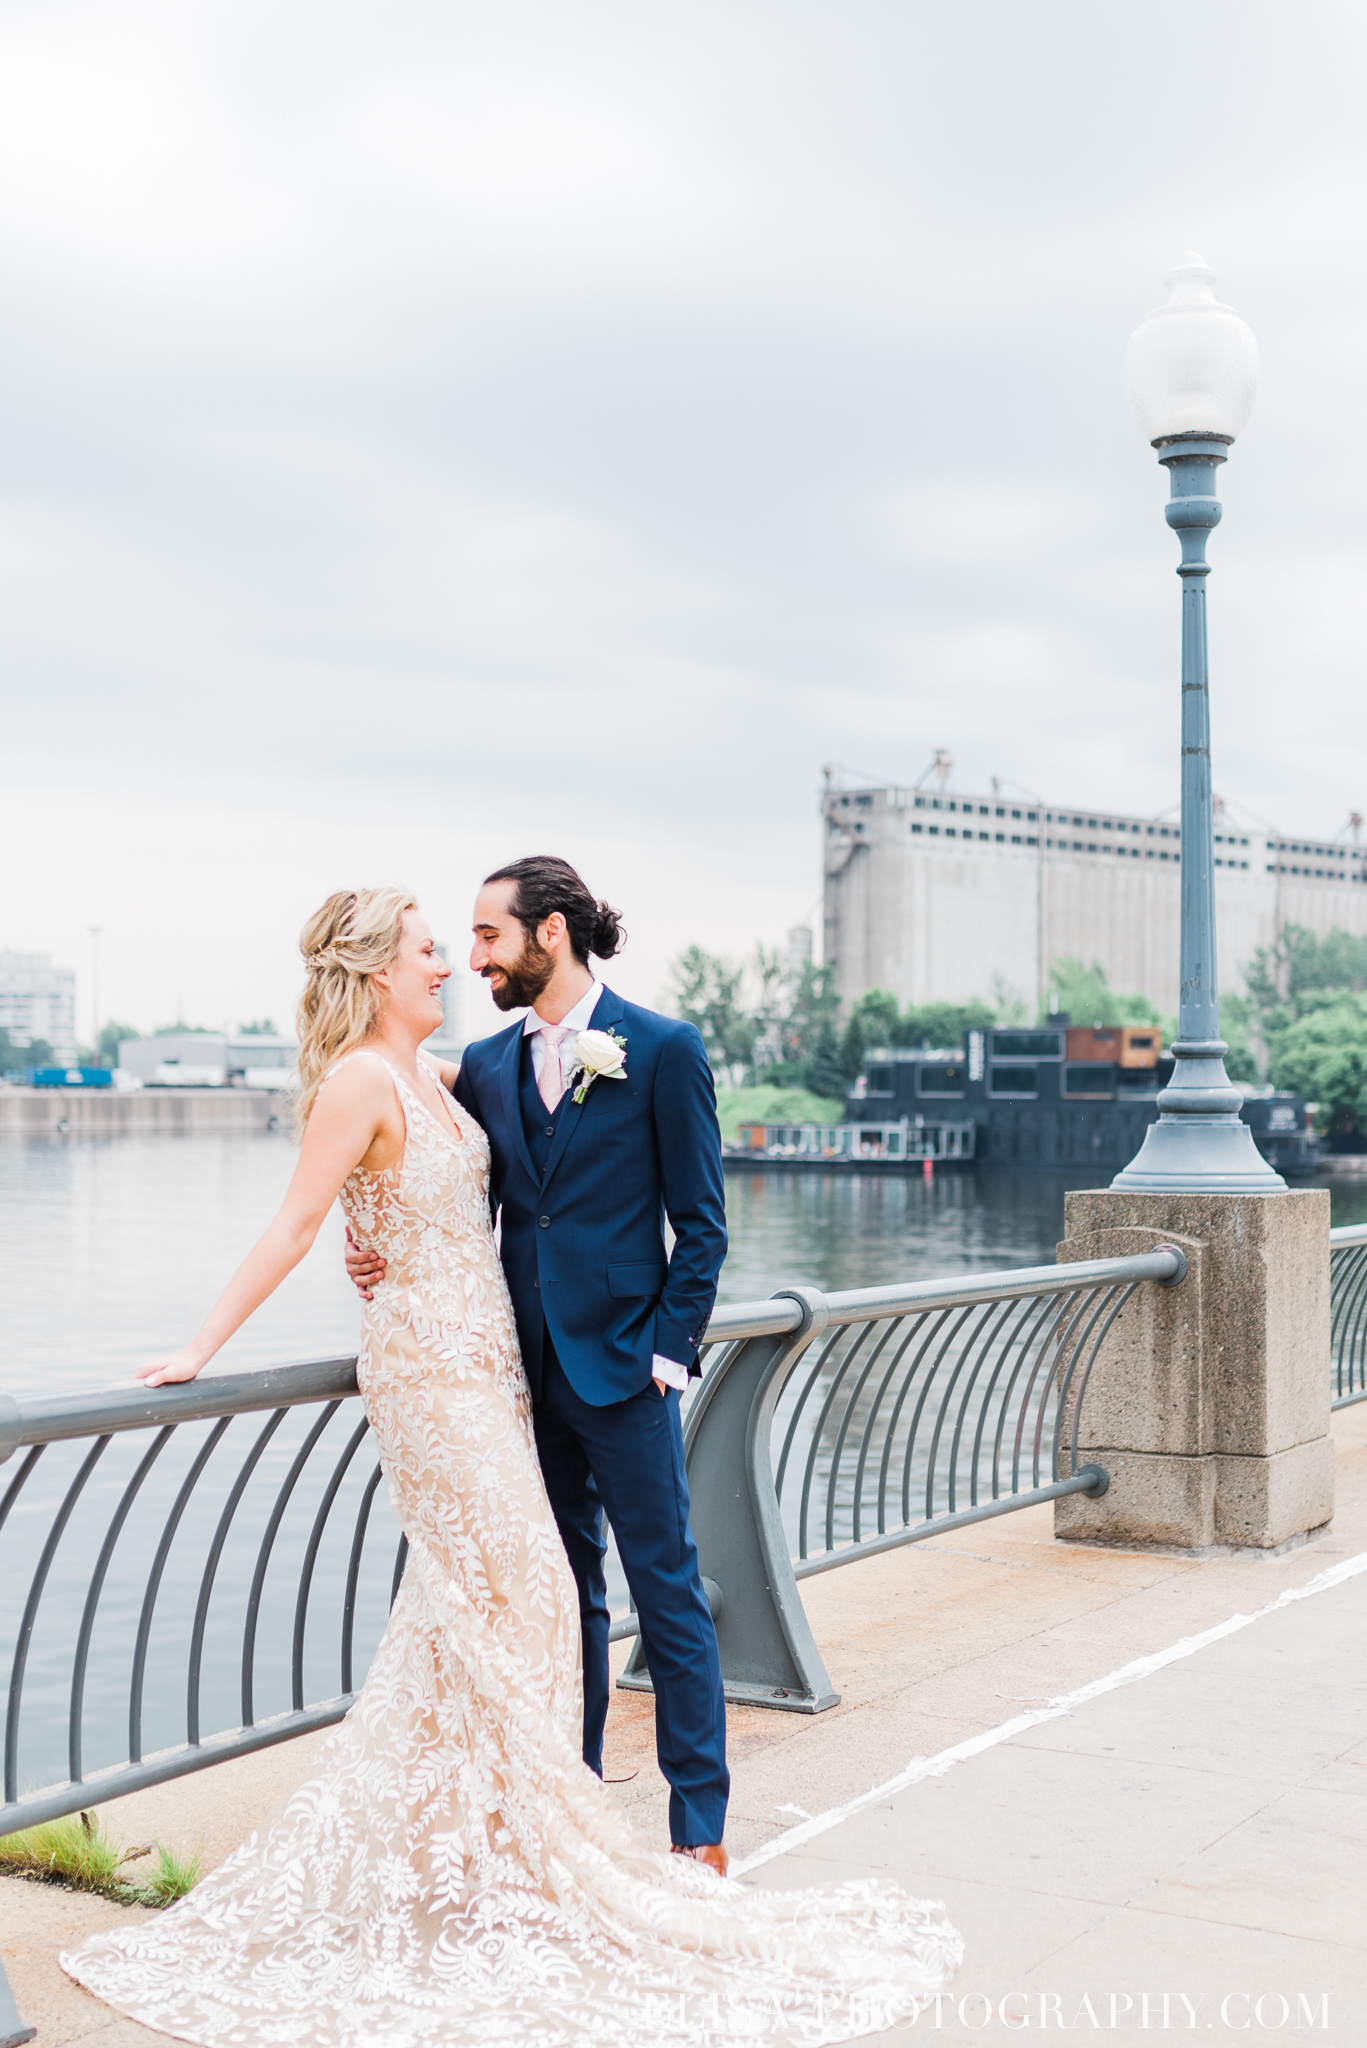 photo mariage downtown montreal urban wedding portrait elisa photographer 9275 - An elegant wedding under the marquee at the Forest and Stream Club in Montreal